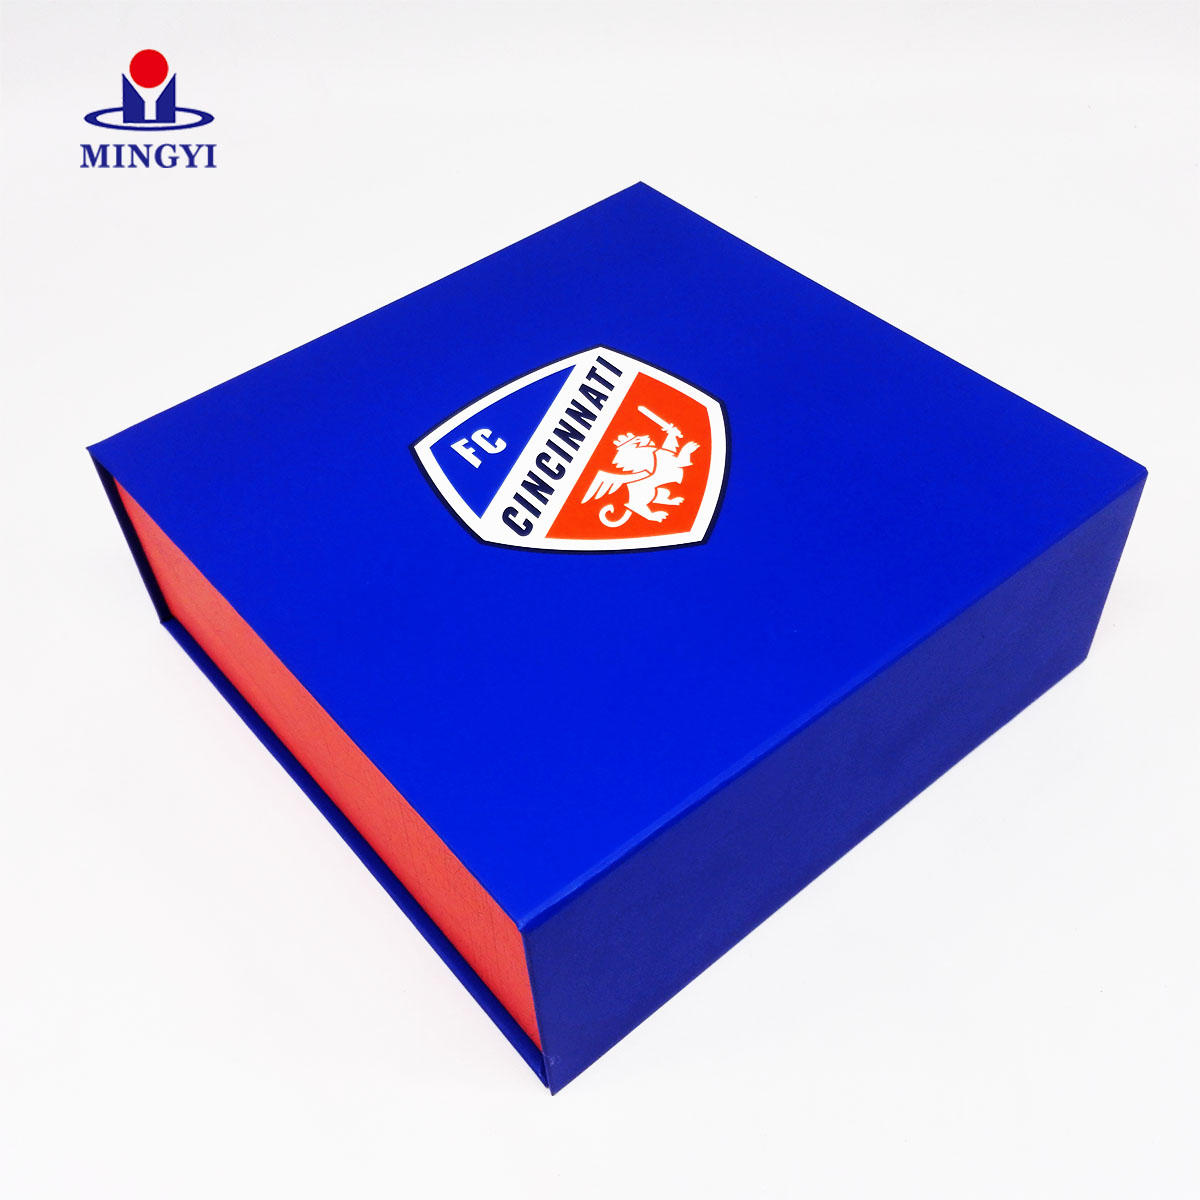 Luxury basketball clamshell souvenir packaging boxes customized logo